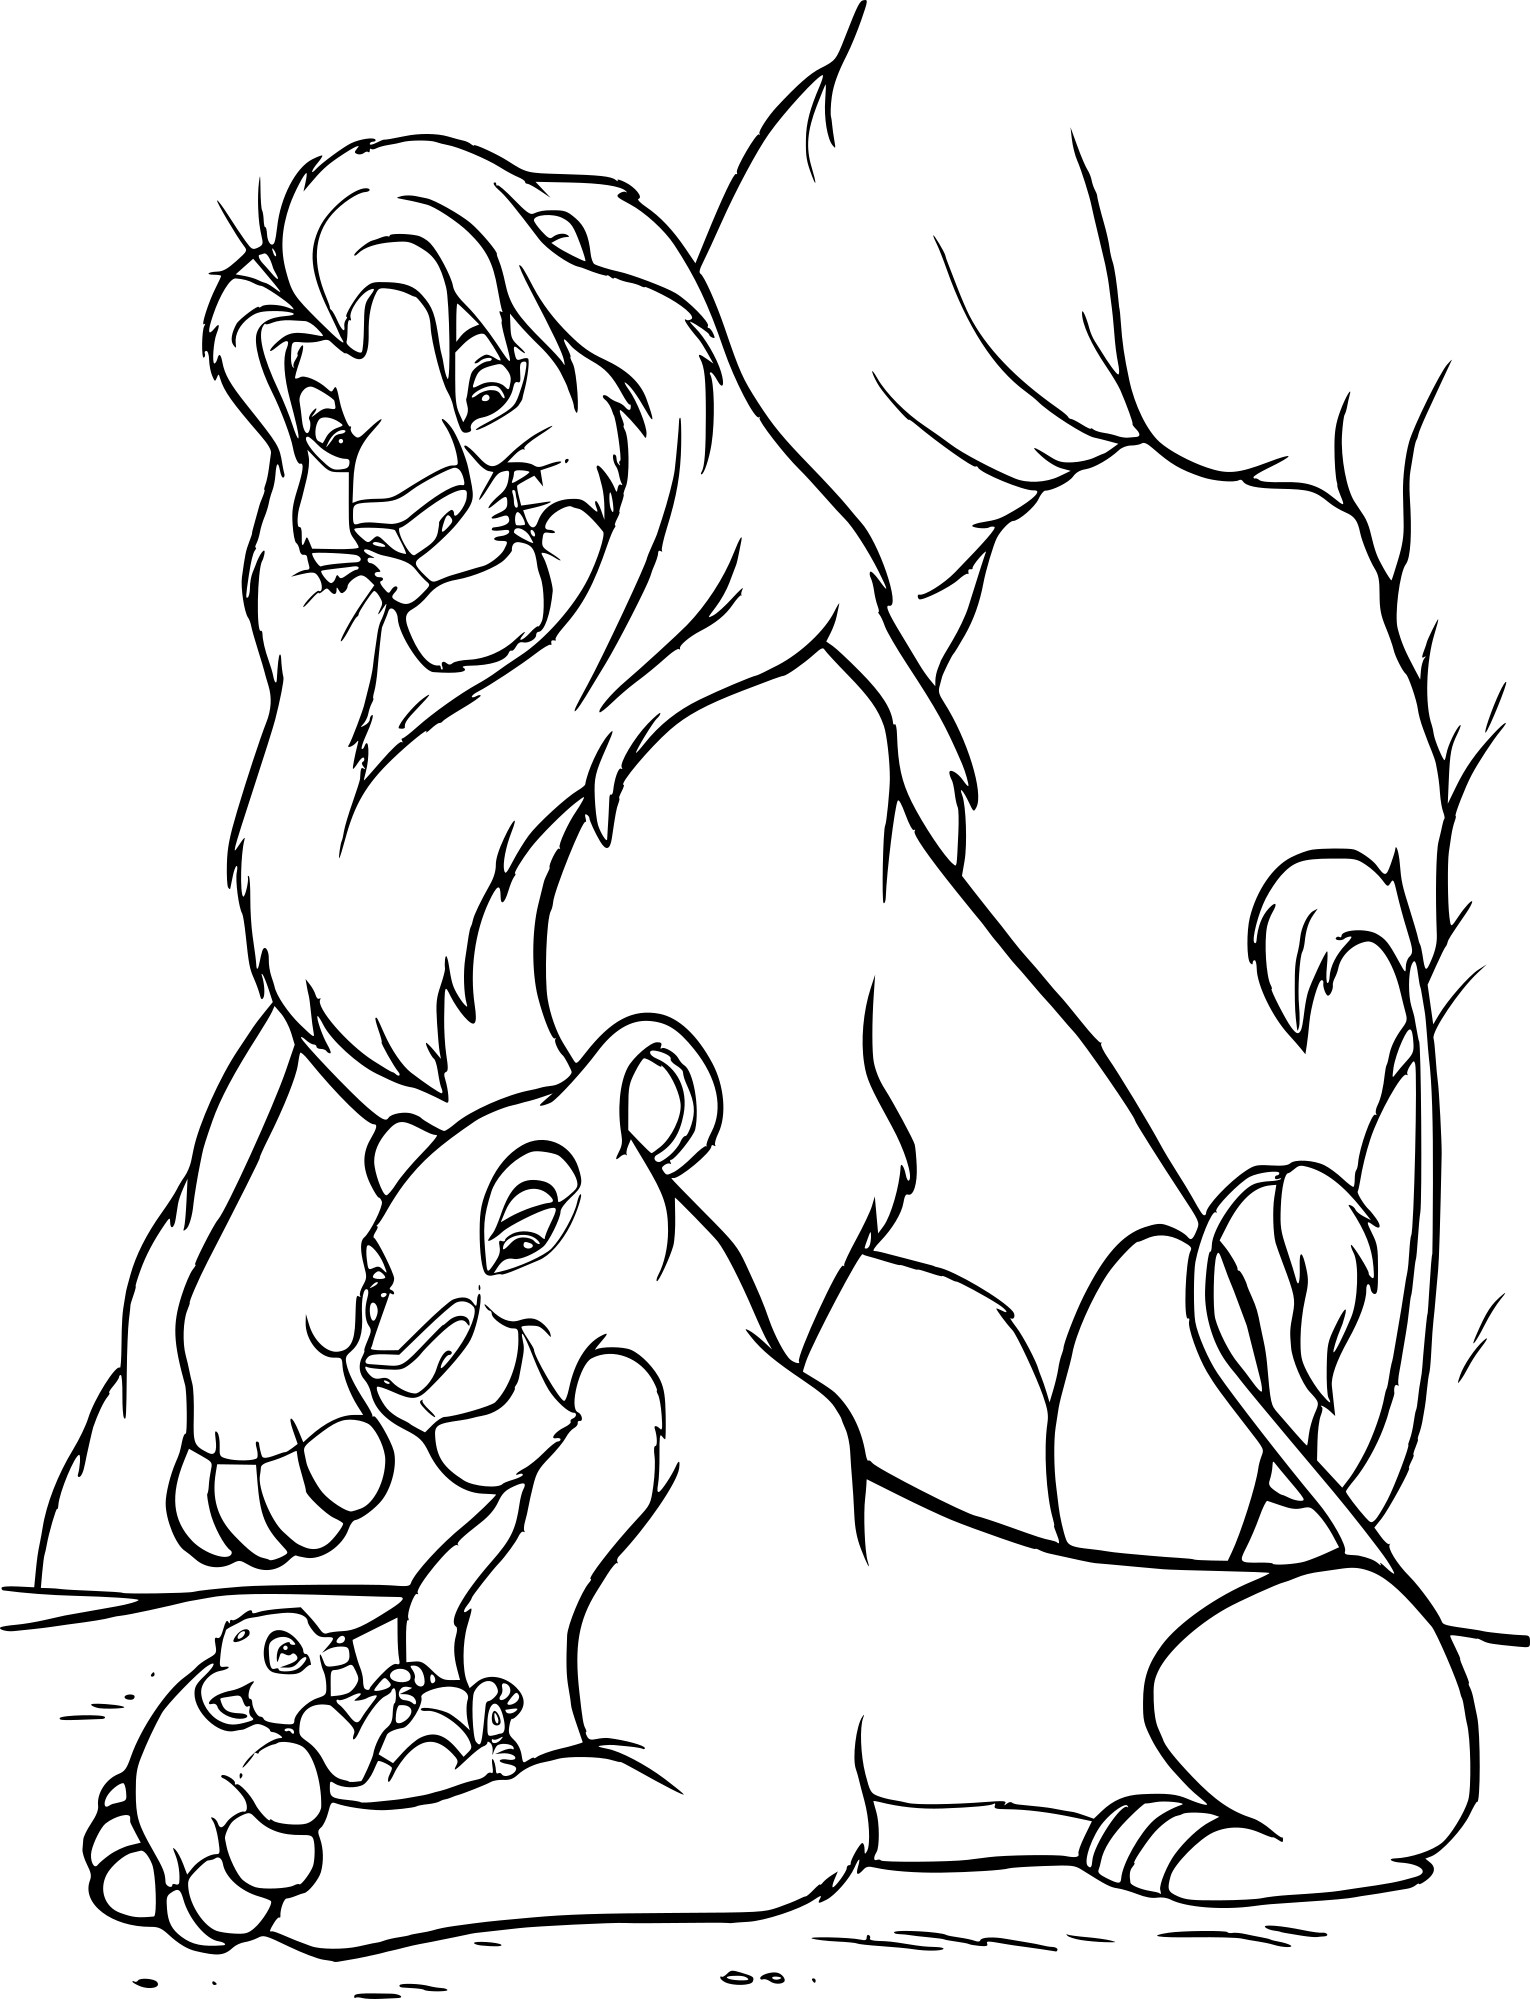 Lion Cub Coloring Pages For Kids 36658 likewise Simba Coloring Pages further Mufasa Lion King Coloring Pages further Der Kleine Simba also Re Leone Disegni Da Colorare. on lion king nala and kiara